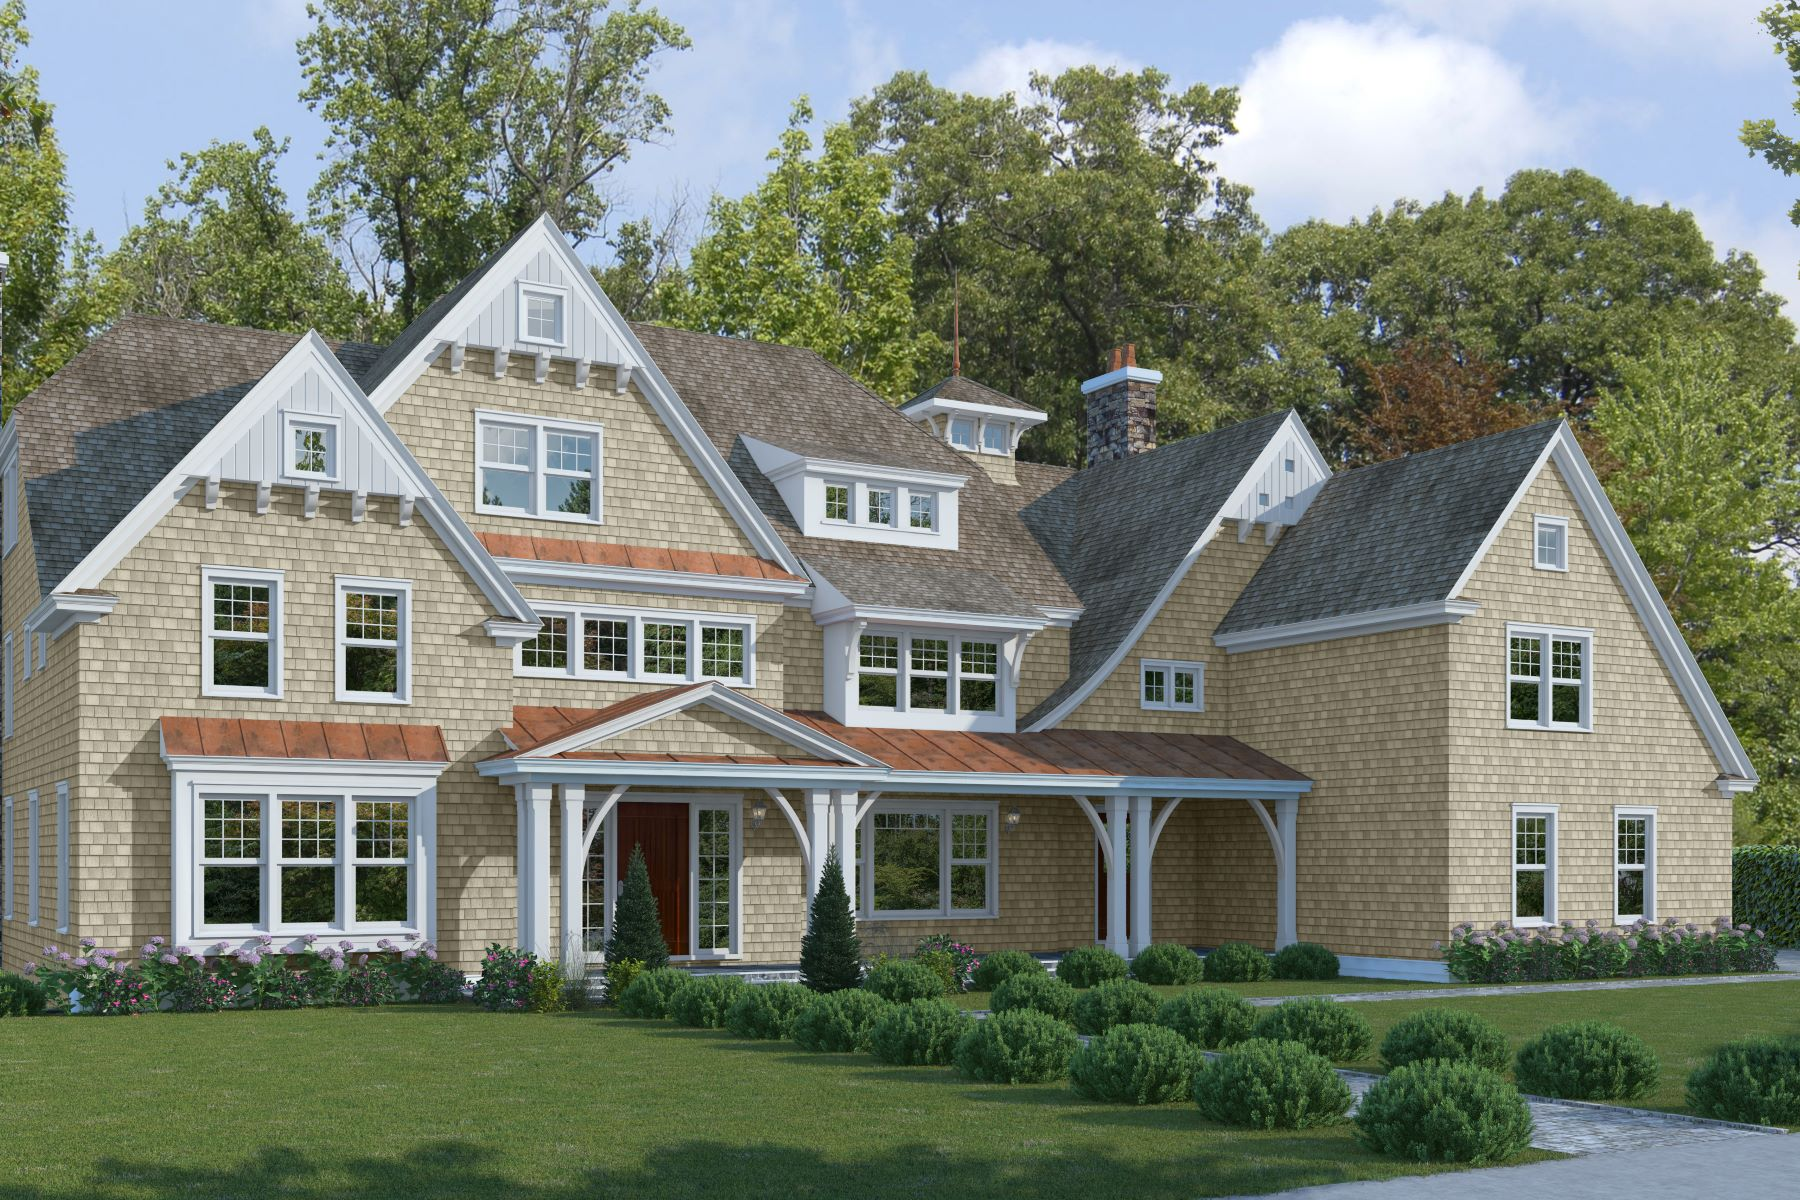 Maison unifamiliale pour l Vente à Extraordinary New Construction 729 Smith Ridge Road New Canaan, Connecticut 06840 États-Unis